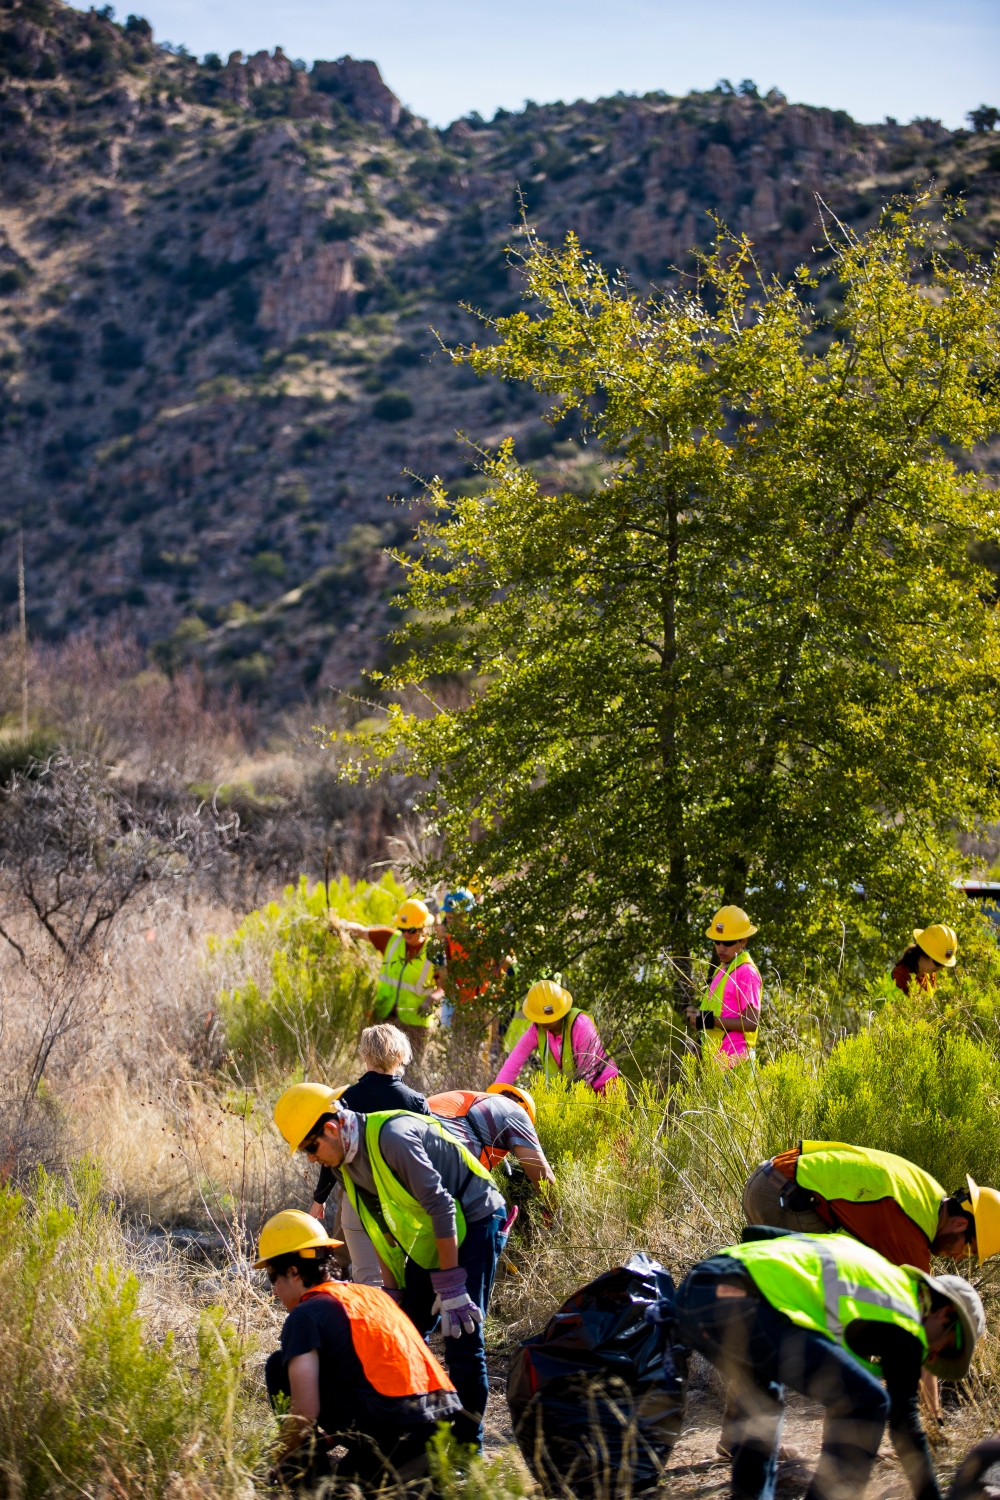 Thursday_Overview of trailwork_Photo by Pima County Communications